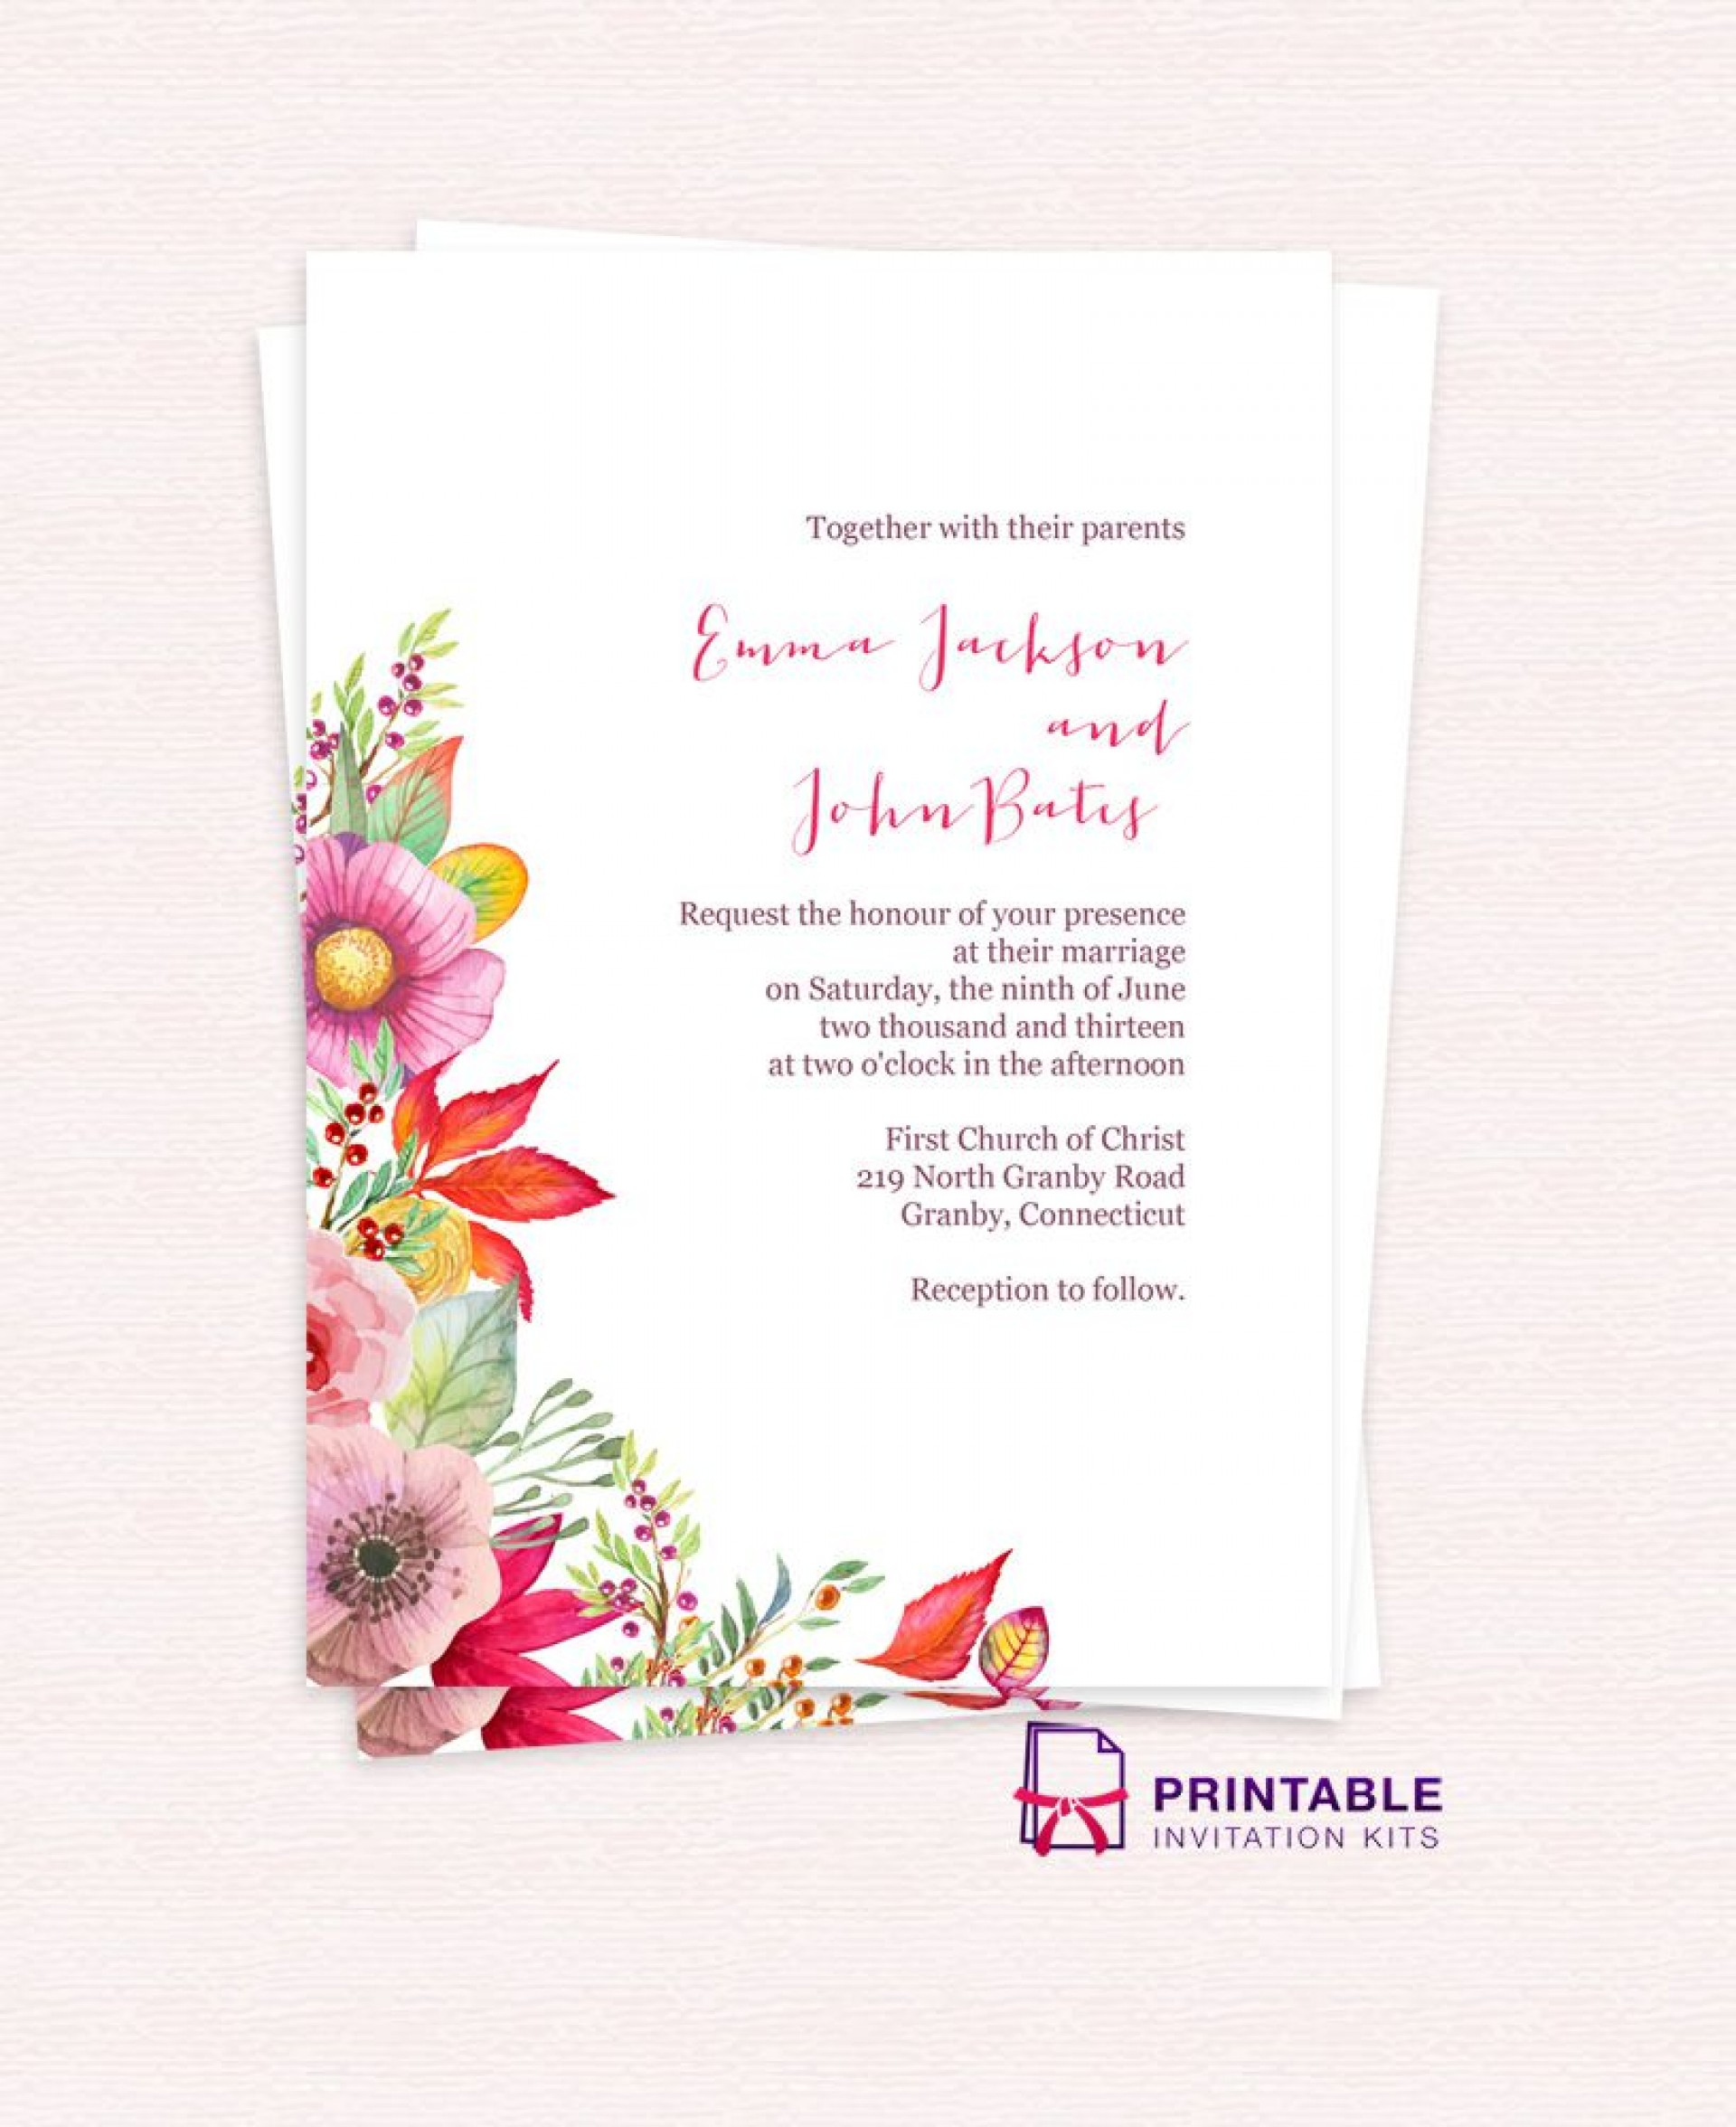 005 Stupendou Free Wedding Invitation Template Download Concept  Psd Card Indian1920